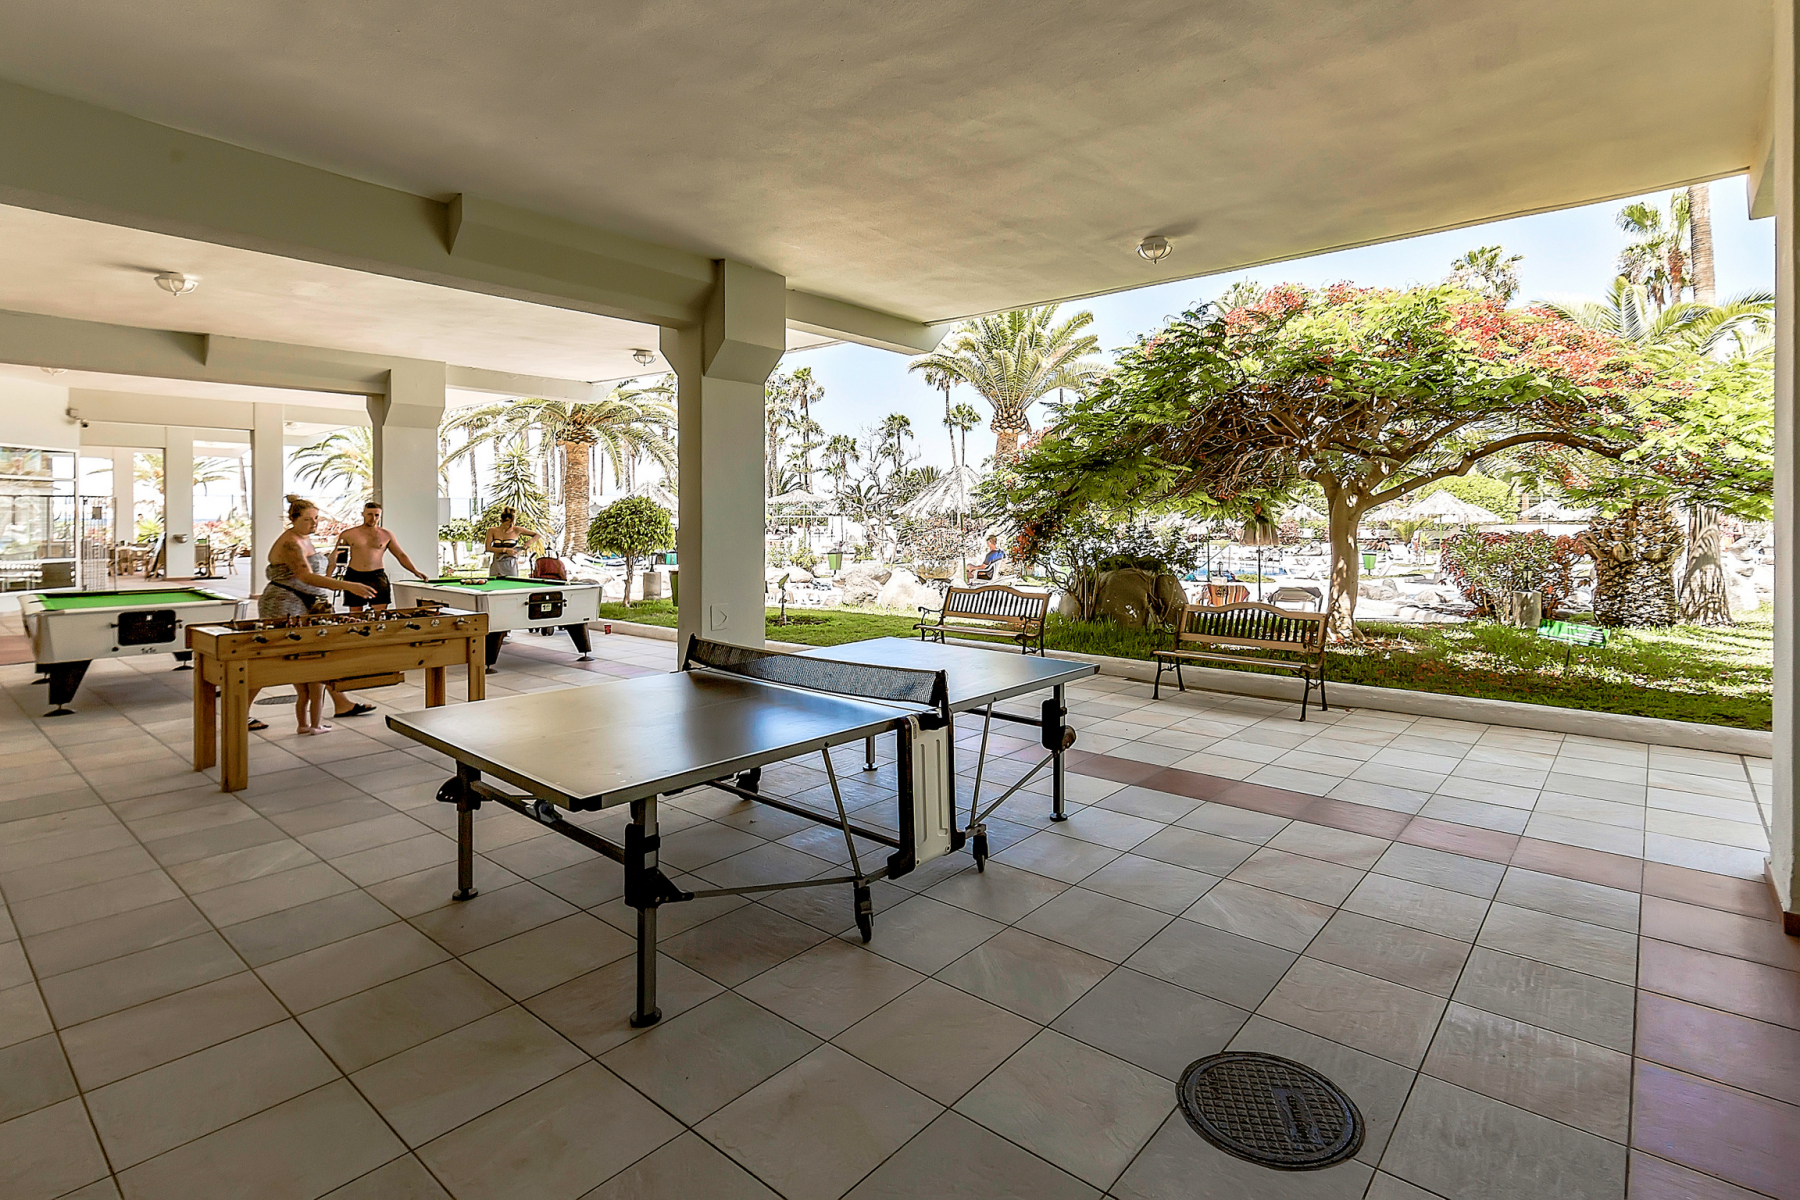 Properties for Sale in Tenerife, Canary Islands, Spain | SylkWayStar Real Estate. Lovely 1 Bedroom Apartment - Altamira. Image-25886